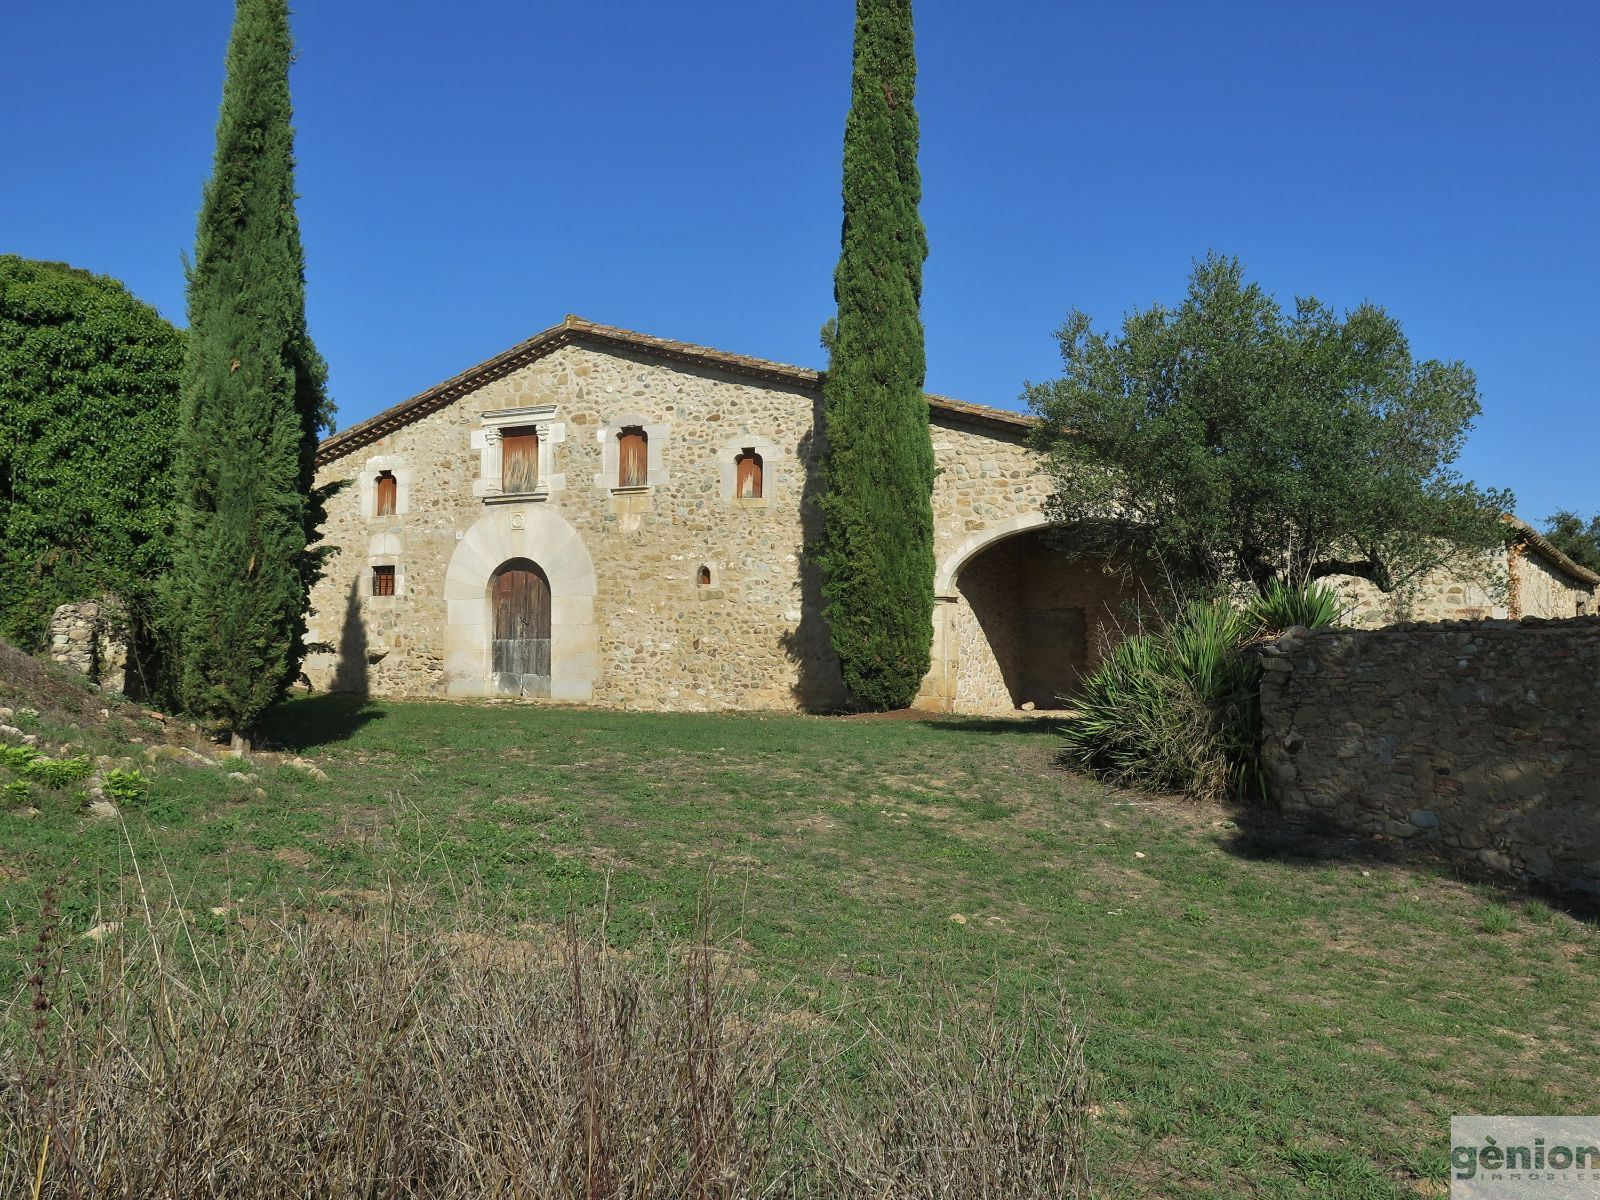 AUTHENTIC TRADITIONAL CATALAN FARMHOUSE: 600M² BUILT AREA AND 16 Ha OF GROUNDS, WITH VIEWS OVER THE EMPORDÀ PLAIN